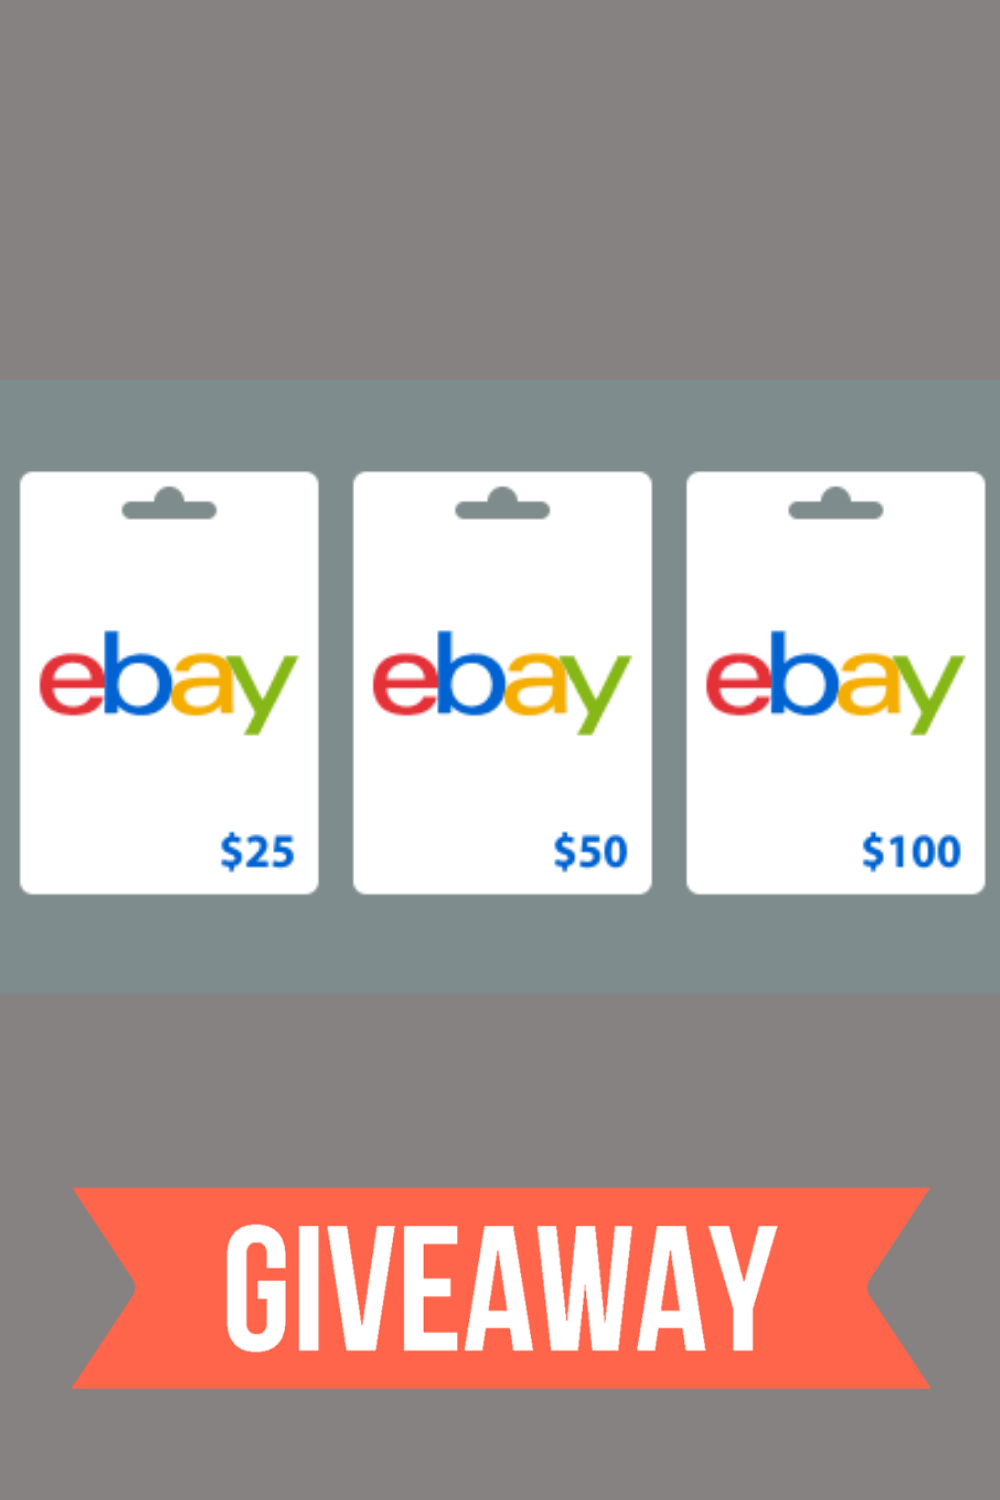 This Giveaway Is 100 Free To Enter We Will Email The Code To Your Email And You Can Use The 100 On In 2020 Gift Card Giveaway Free Gift Cards Online Get Gift Cards